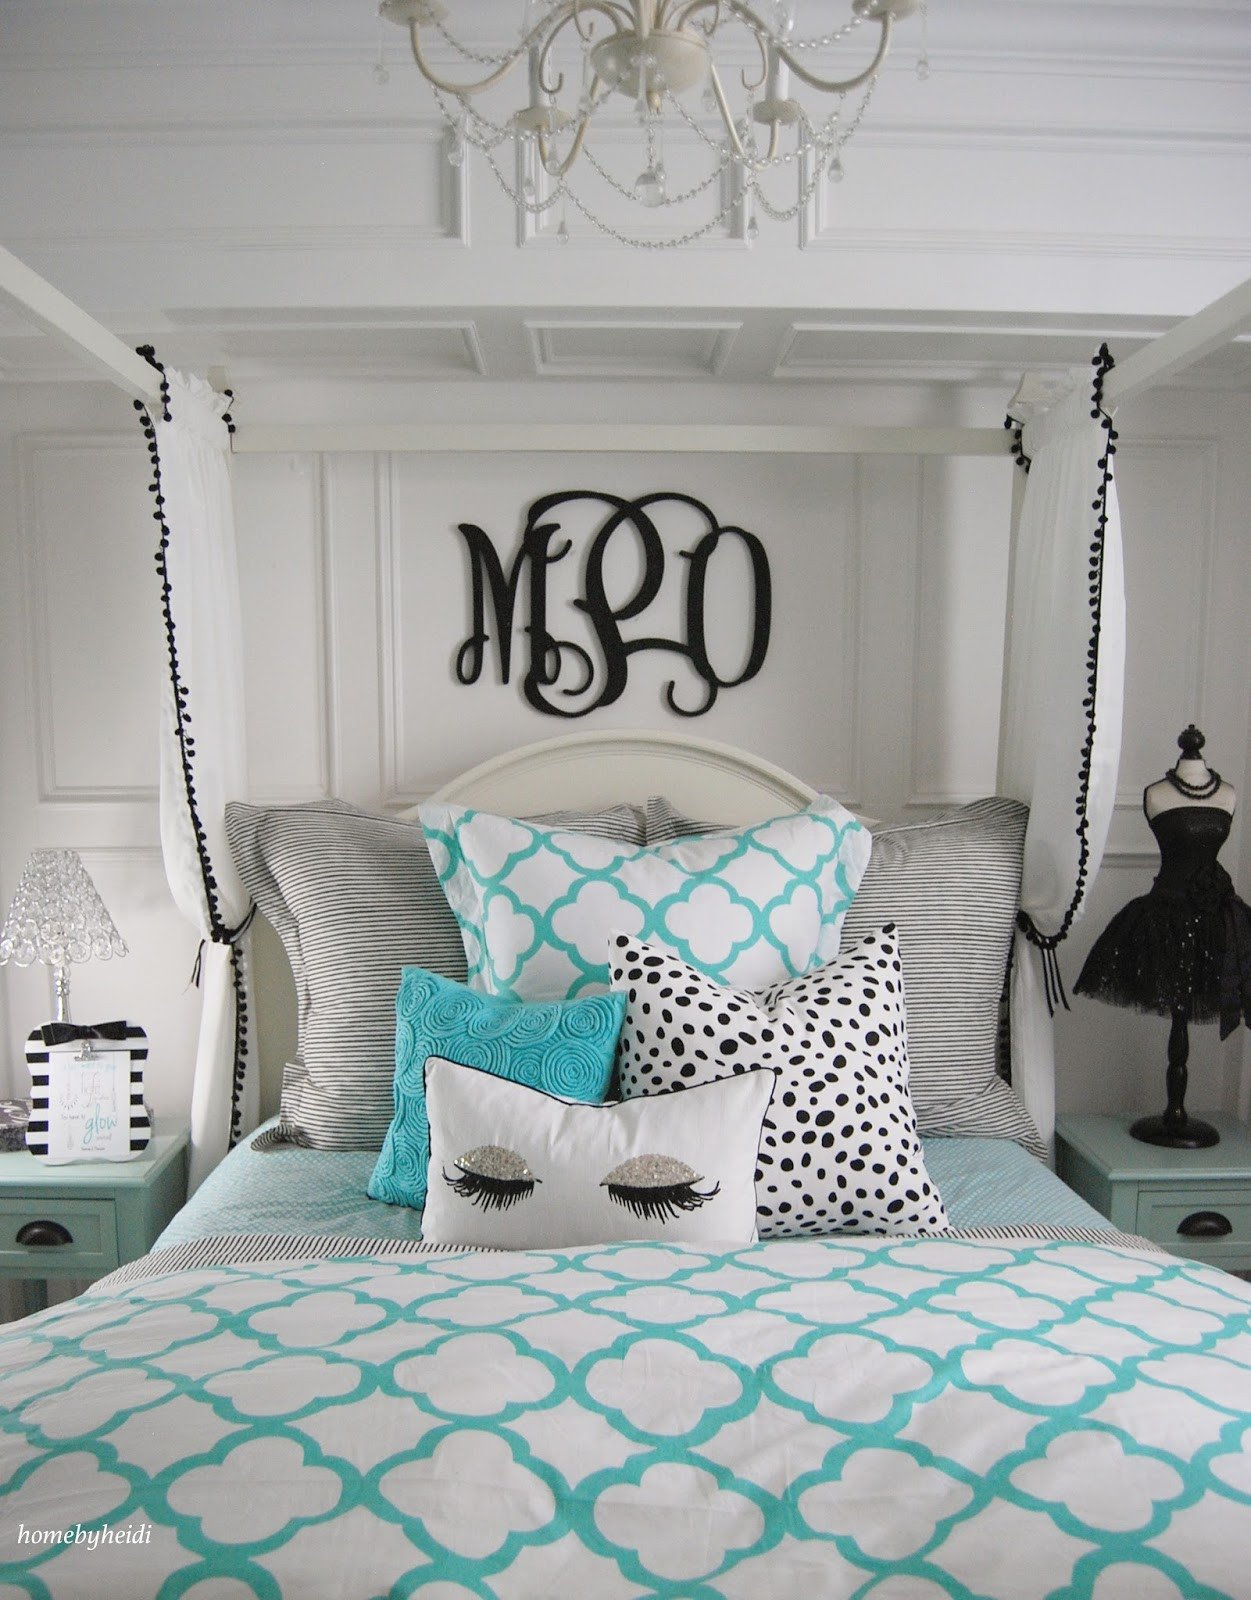 Room Decor Ideas for Teens Fresh Home by Heidi Tiffany Inspired Bedroom